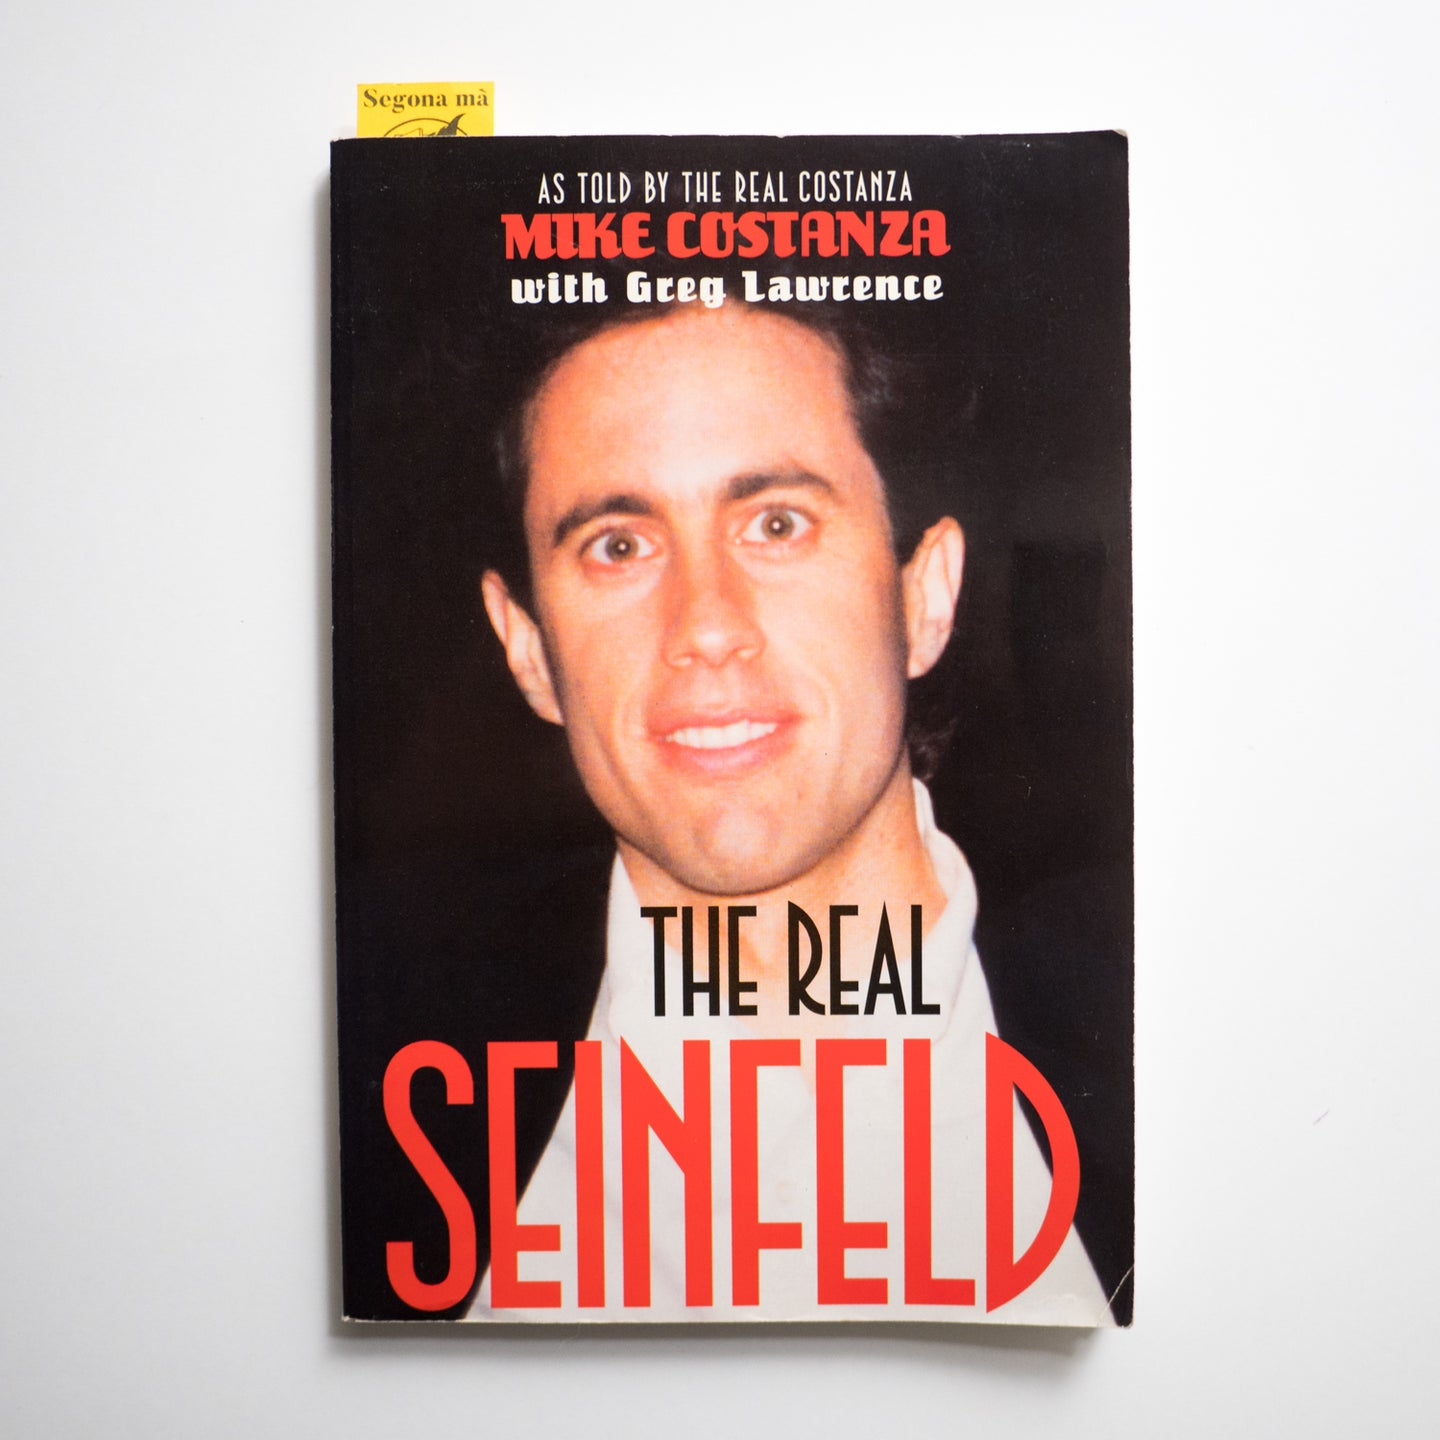 MIKE CONSTANZA | The real Seinfeld as told by the real Costanza*